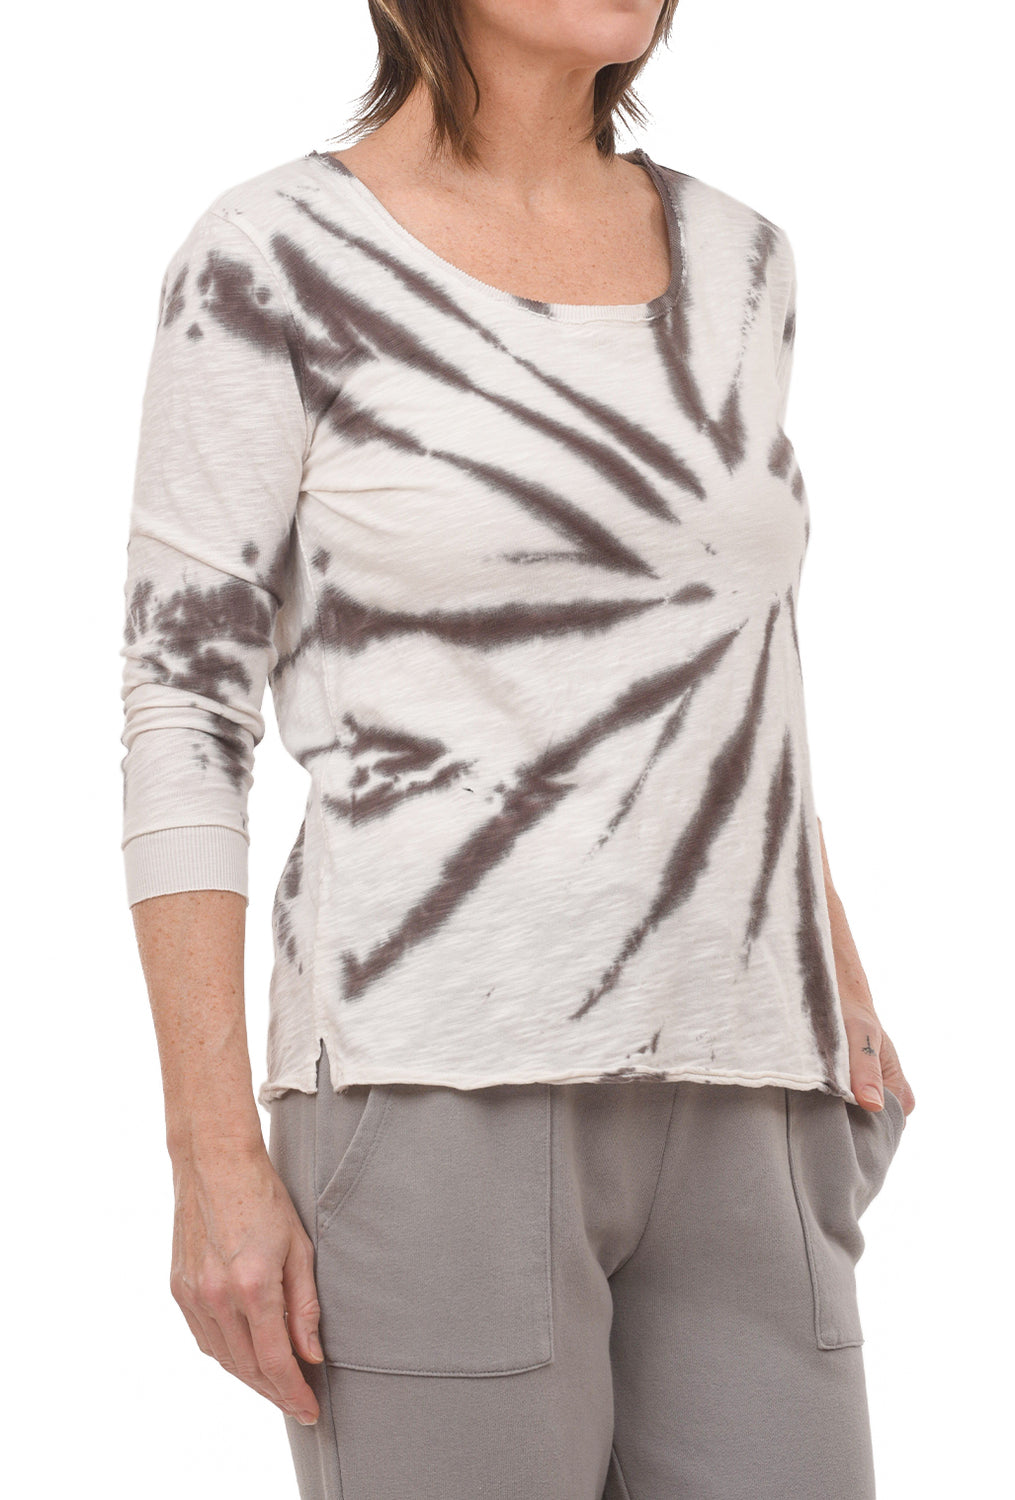 Mododoc Los Angeles 3/4-Sleeve Tie-Dye Tee, Brown Agate